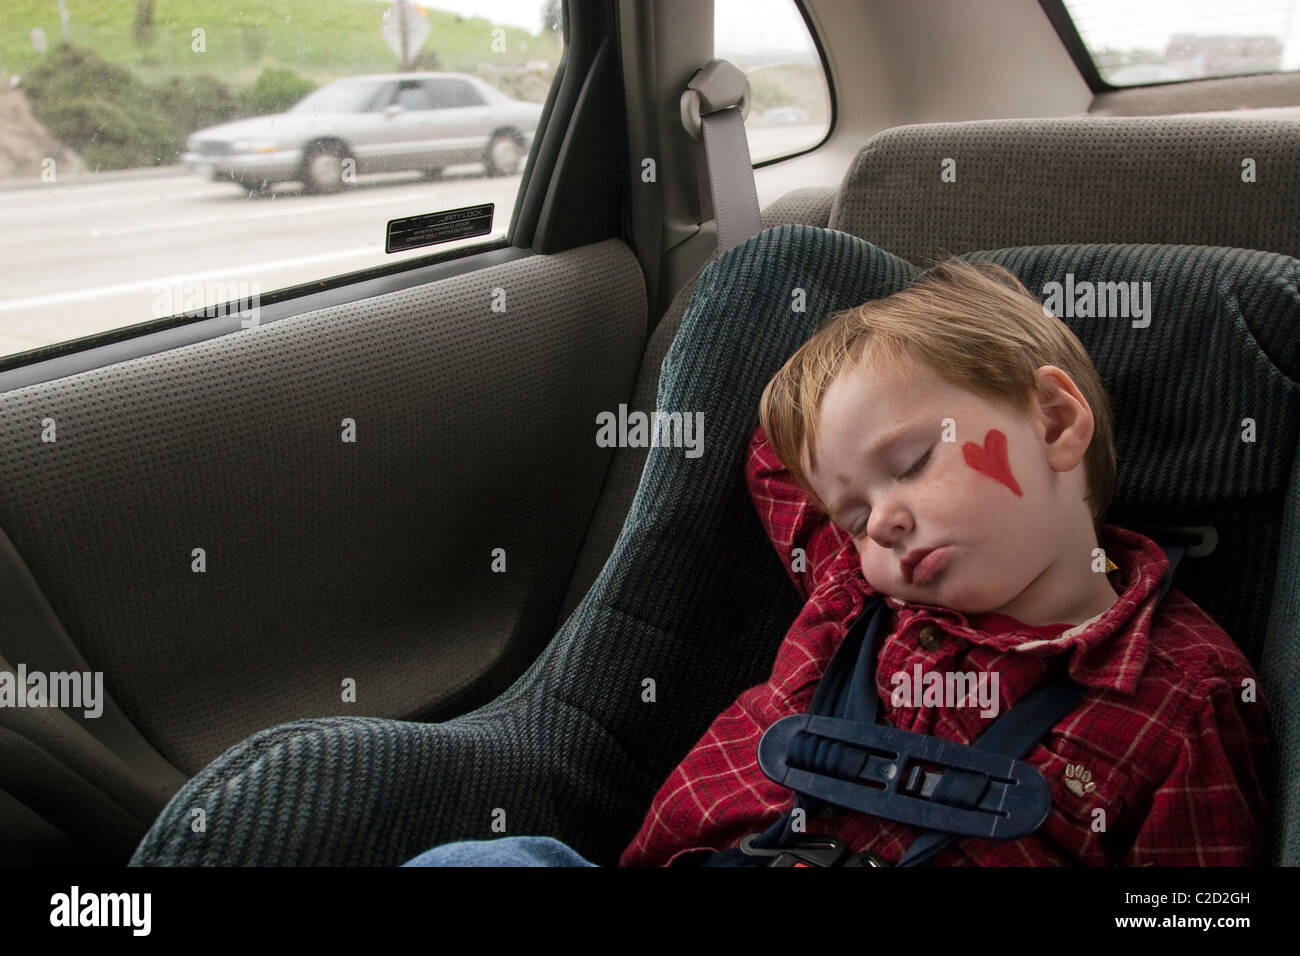 A 3 Year Old Boy Napping In His Car Seat After Family Outing